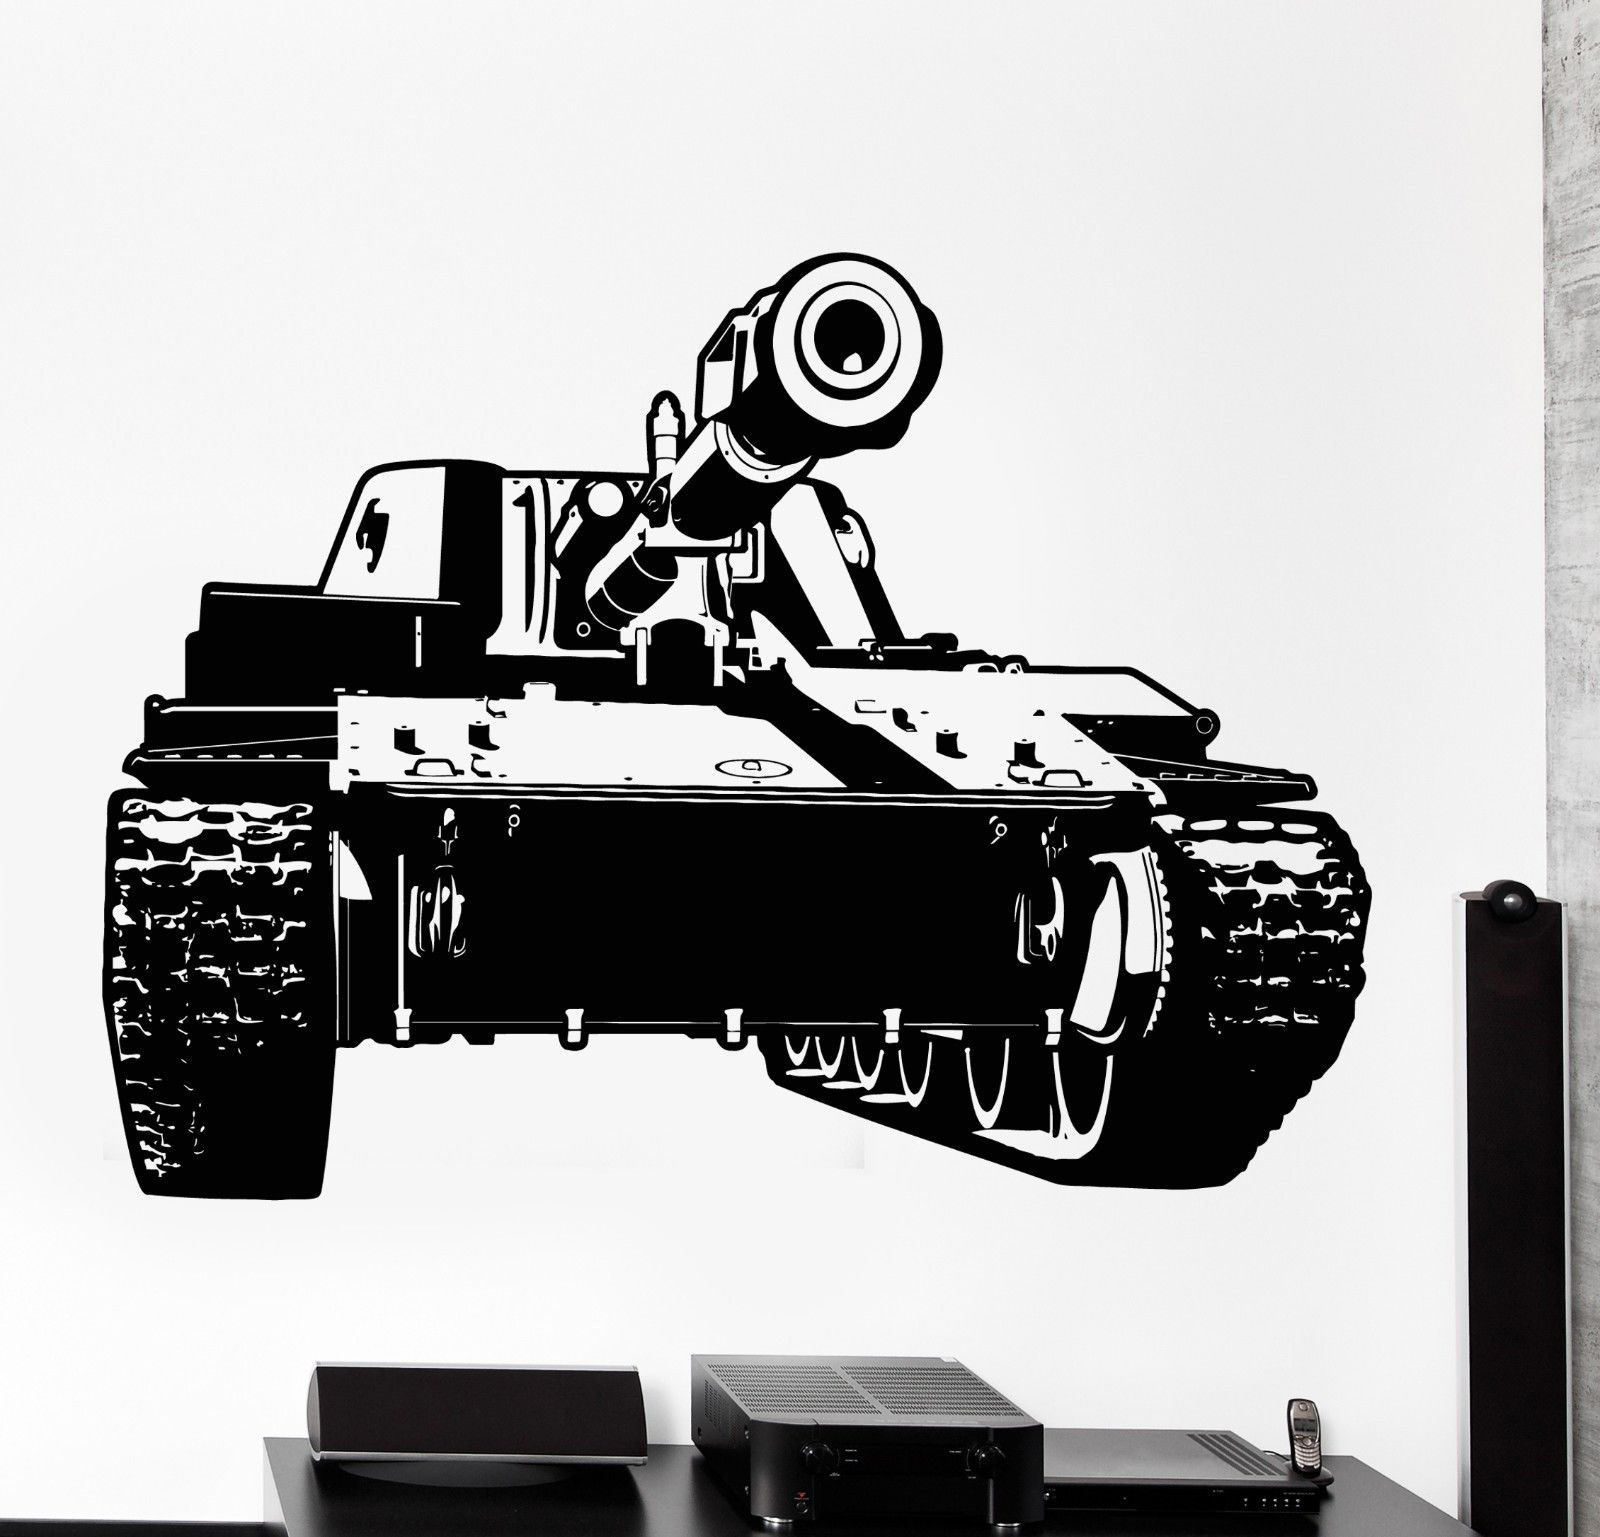 Wall Vinyl Tank Military War Army Cool Decal Z3419 Army Tanks Tanks Military Vinyl Wall [ 1537 x 1600 Pixel ]